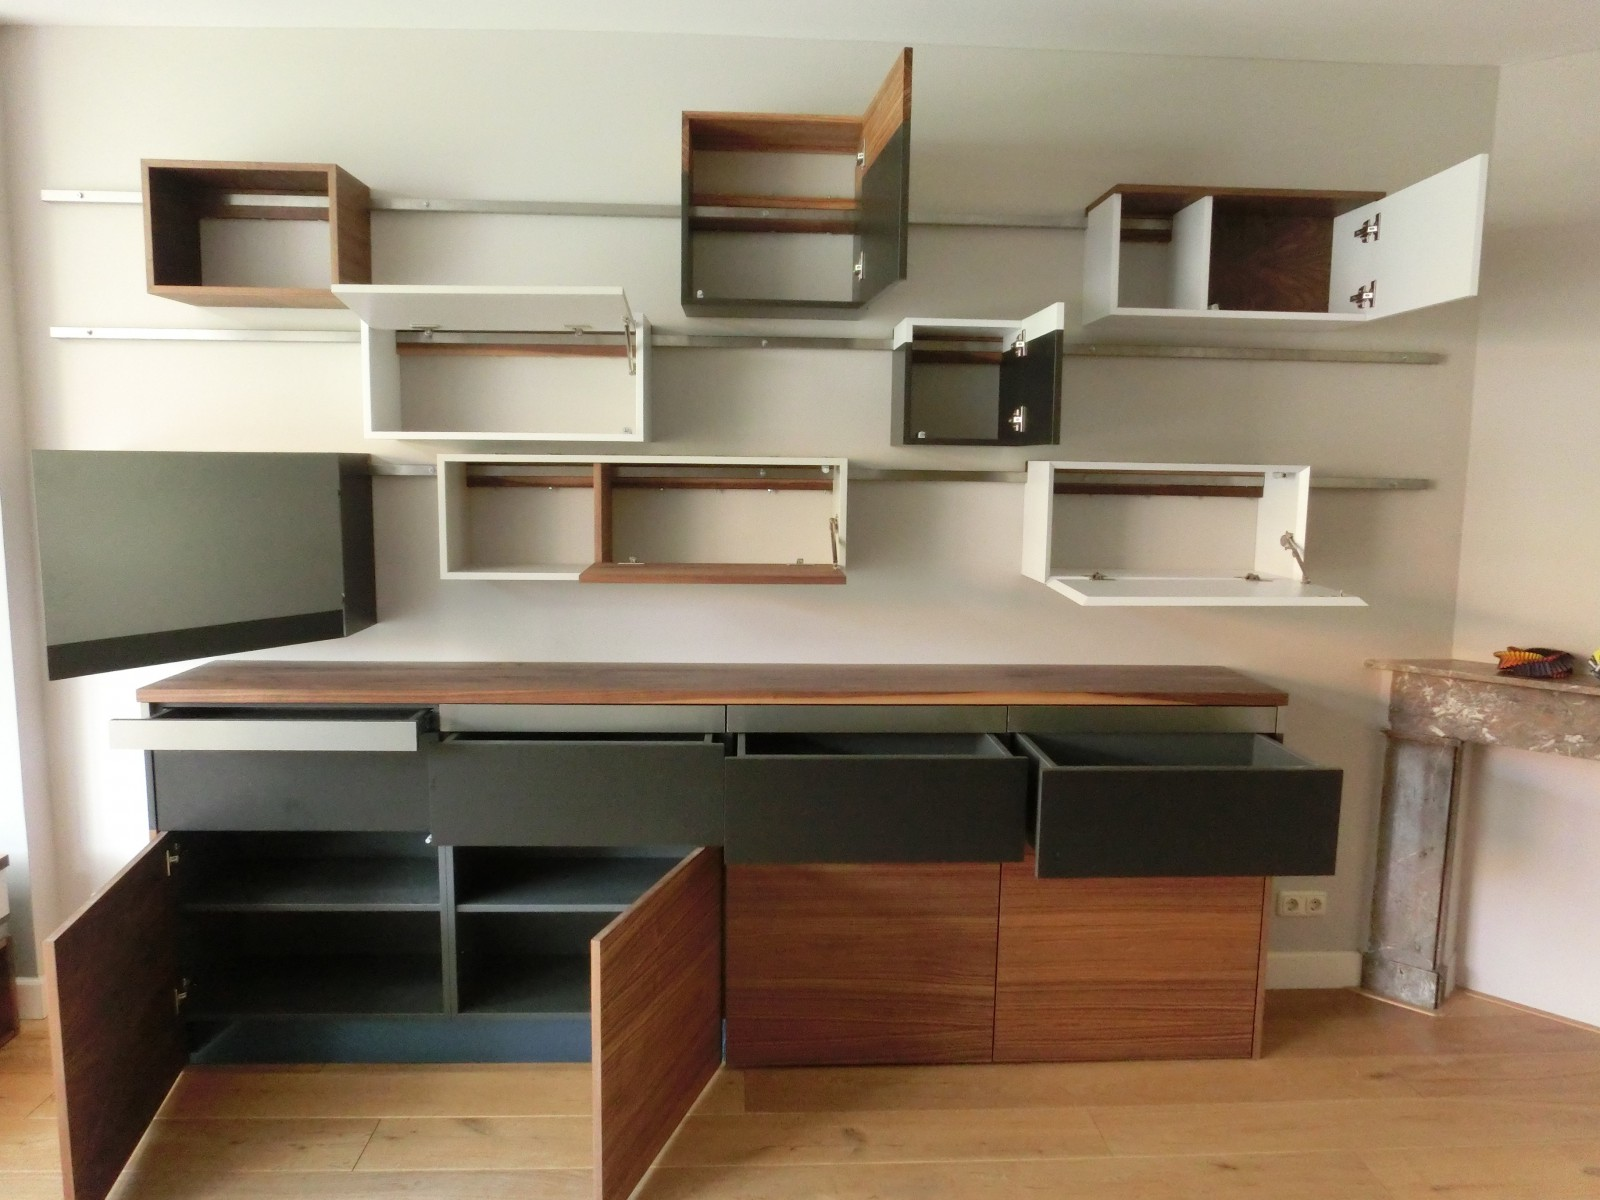 custom made cupboards in Voorburg - design and fabrication by Deuvel Design